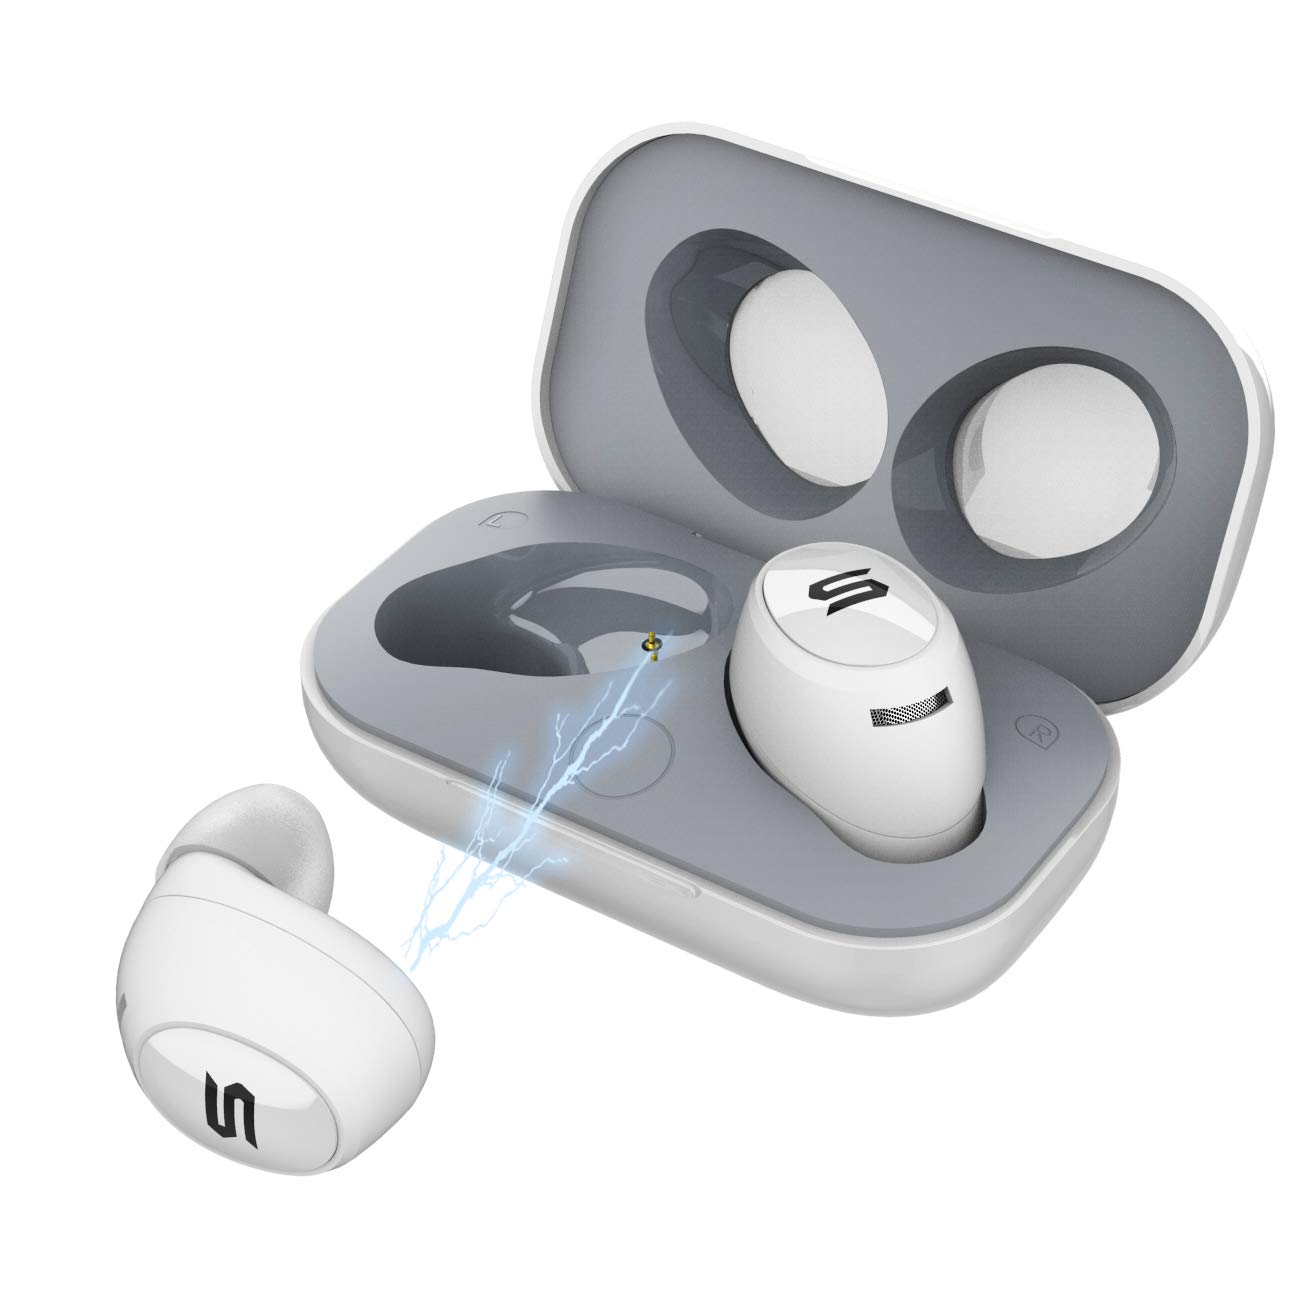 Wireless Earbuds, Soul Electronics Emotion Superior High Performance True Wireless Earphone. Bluetooth Headphone in Ear Headset with Mic. for iPhone Android Smartphones Tablets, Laptop. White